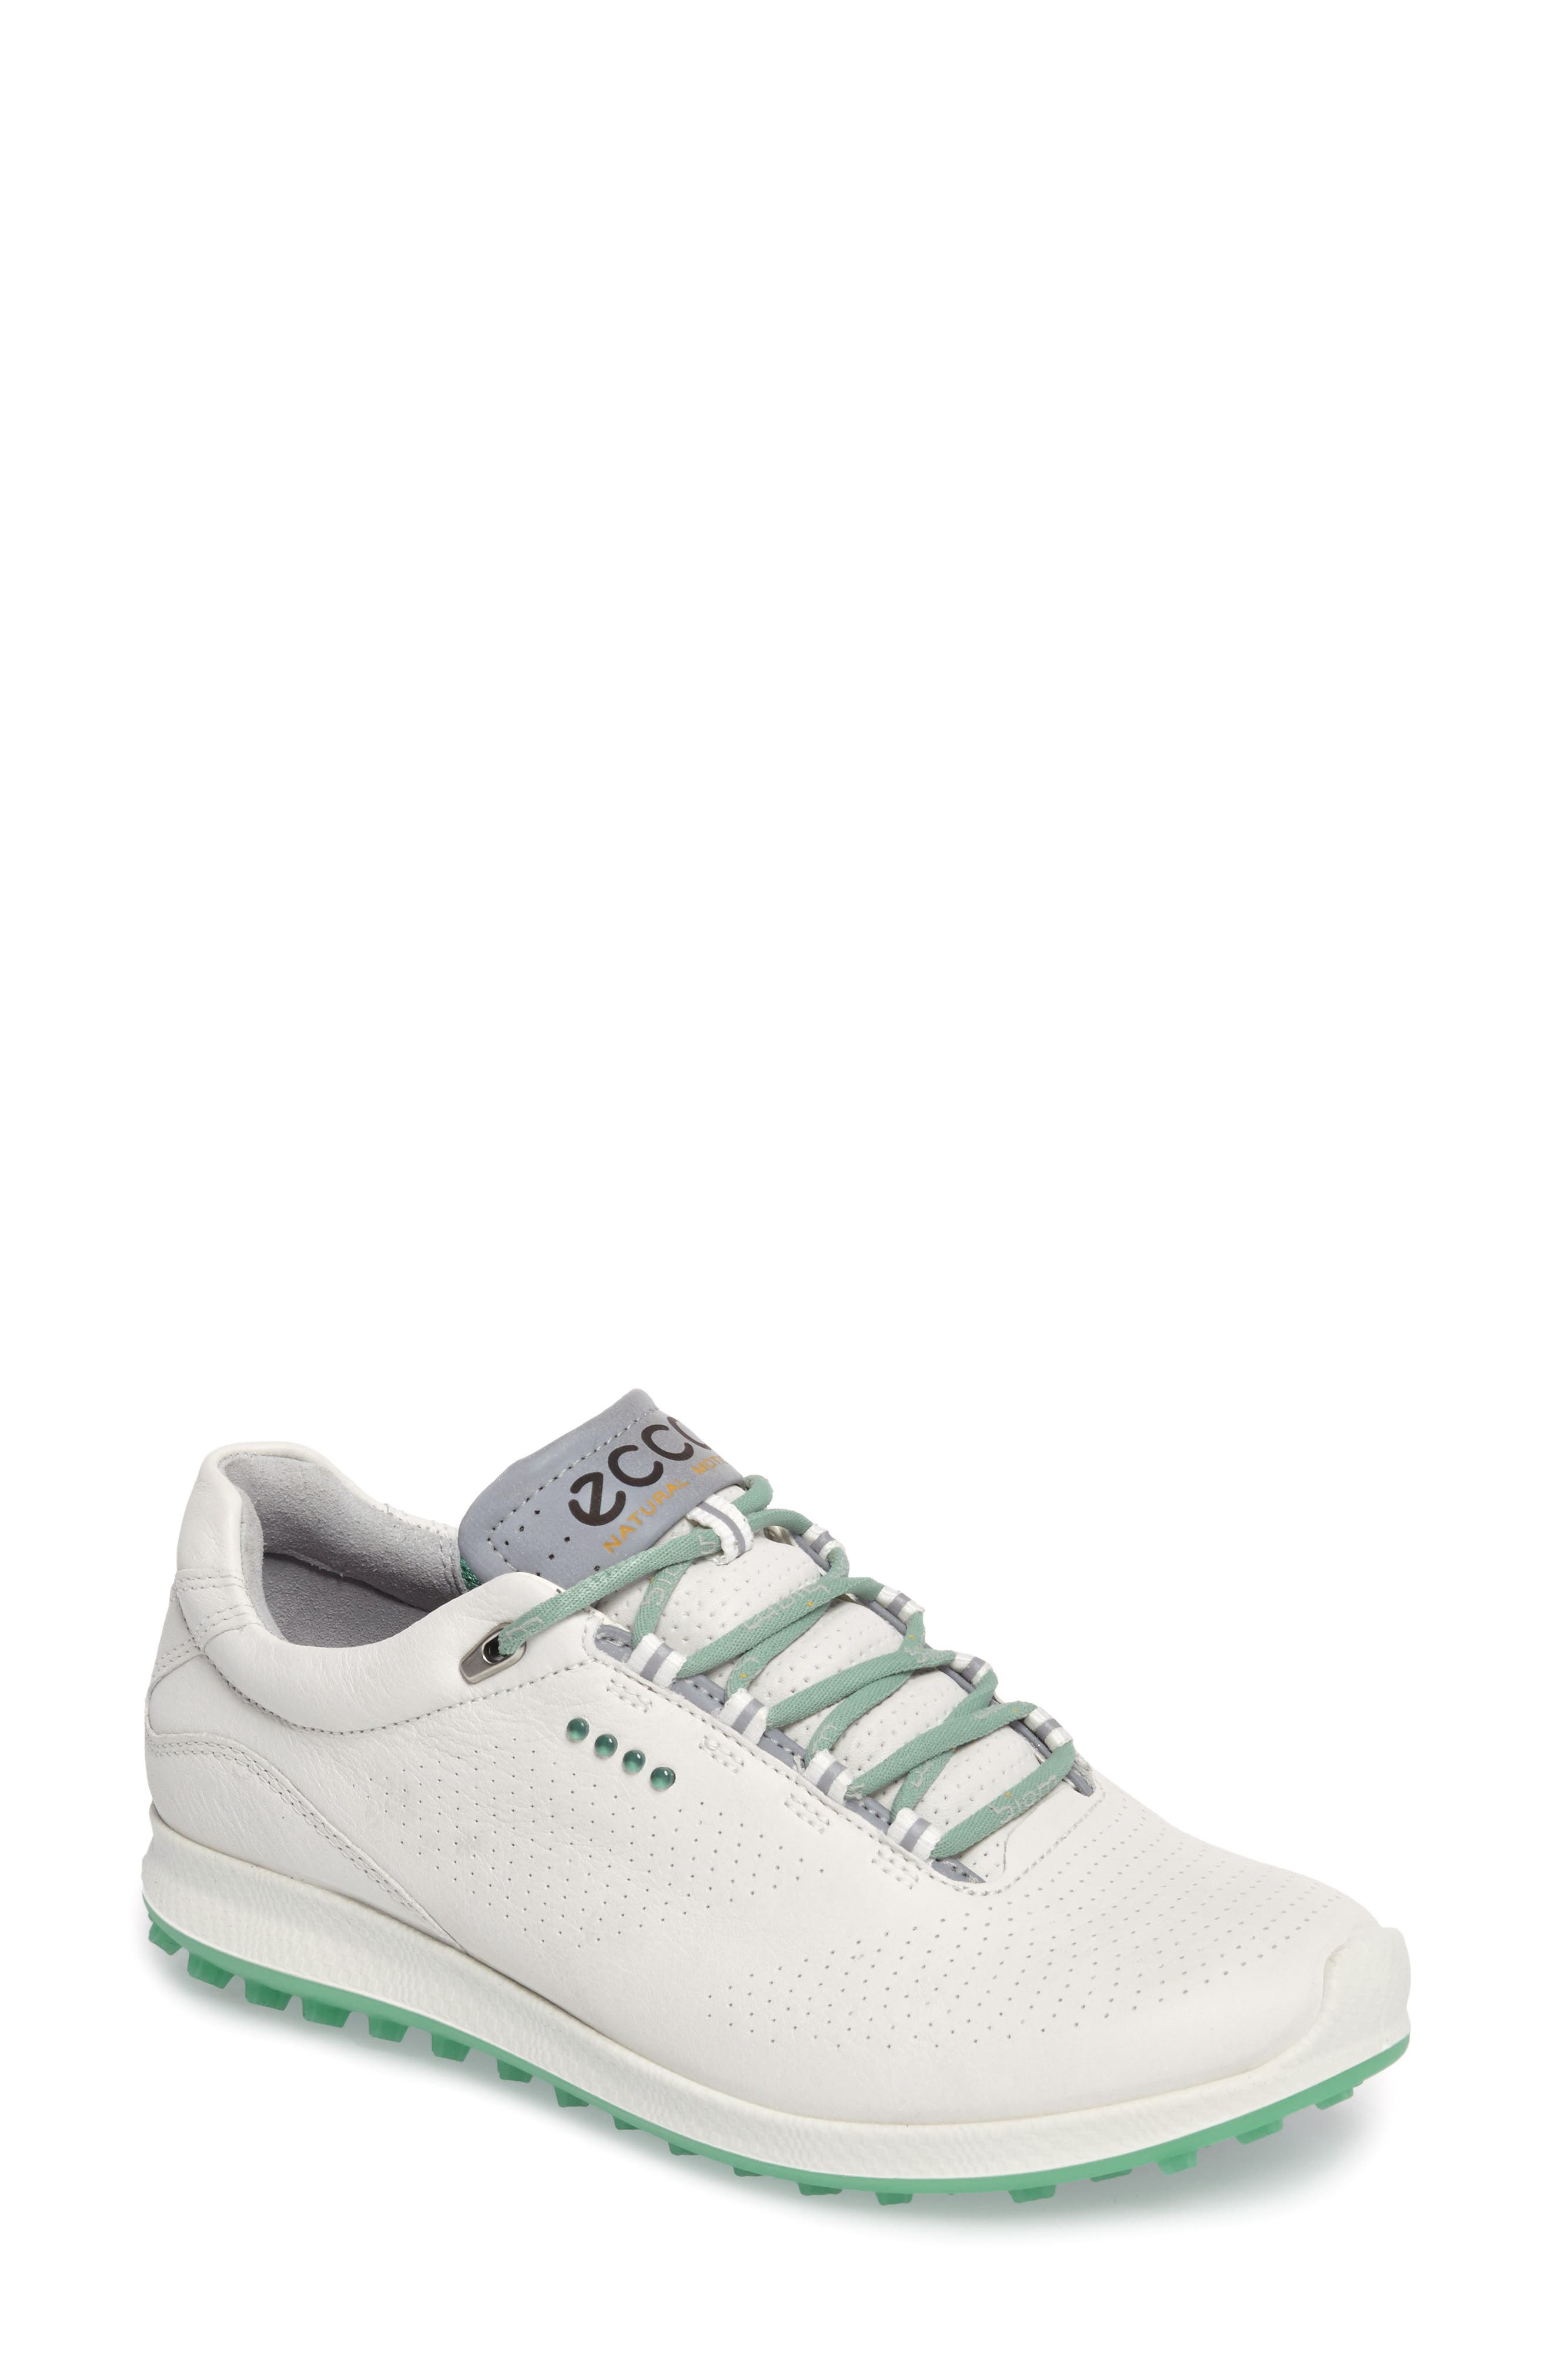 BIOM 2 Hybrid Water-Repellent Golf Shoe,                             Main thumbnail 1, color,                             White/ Granite Green Leather